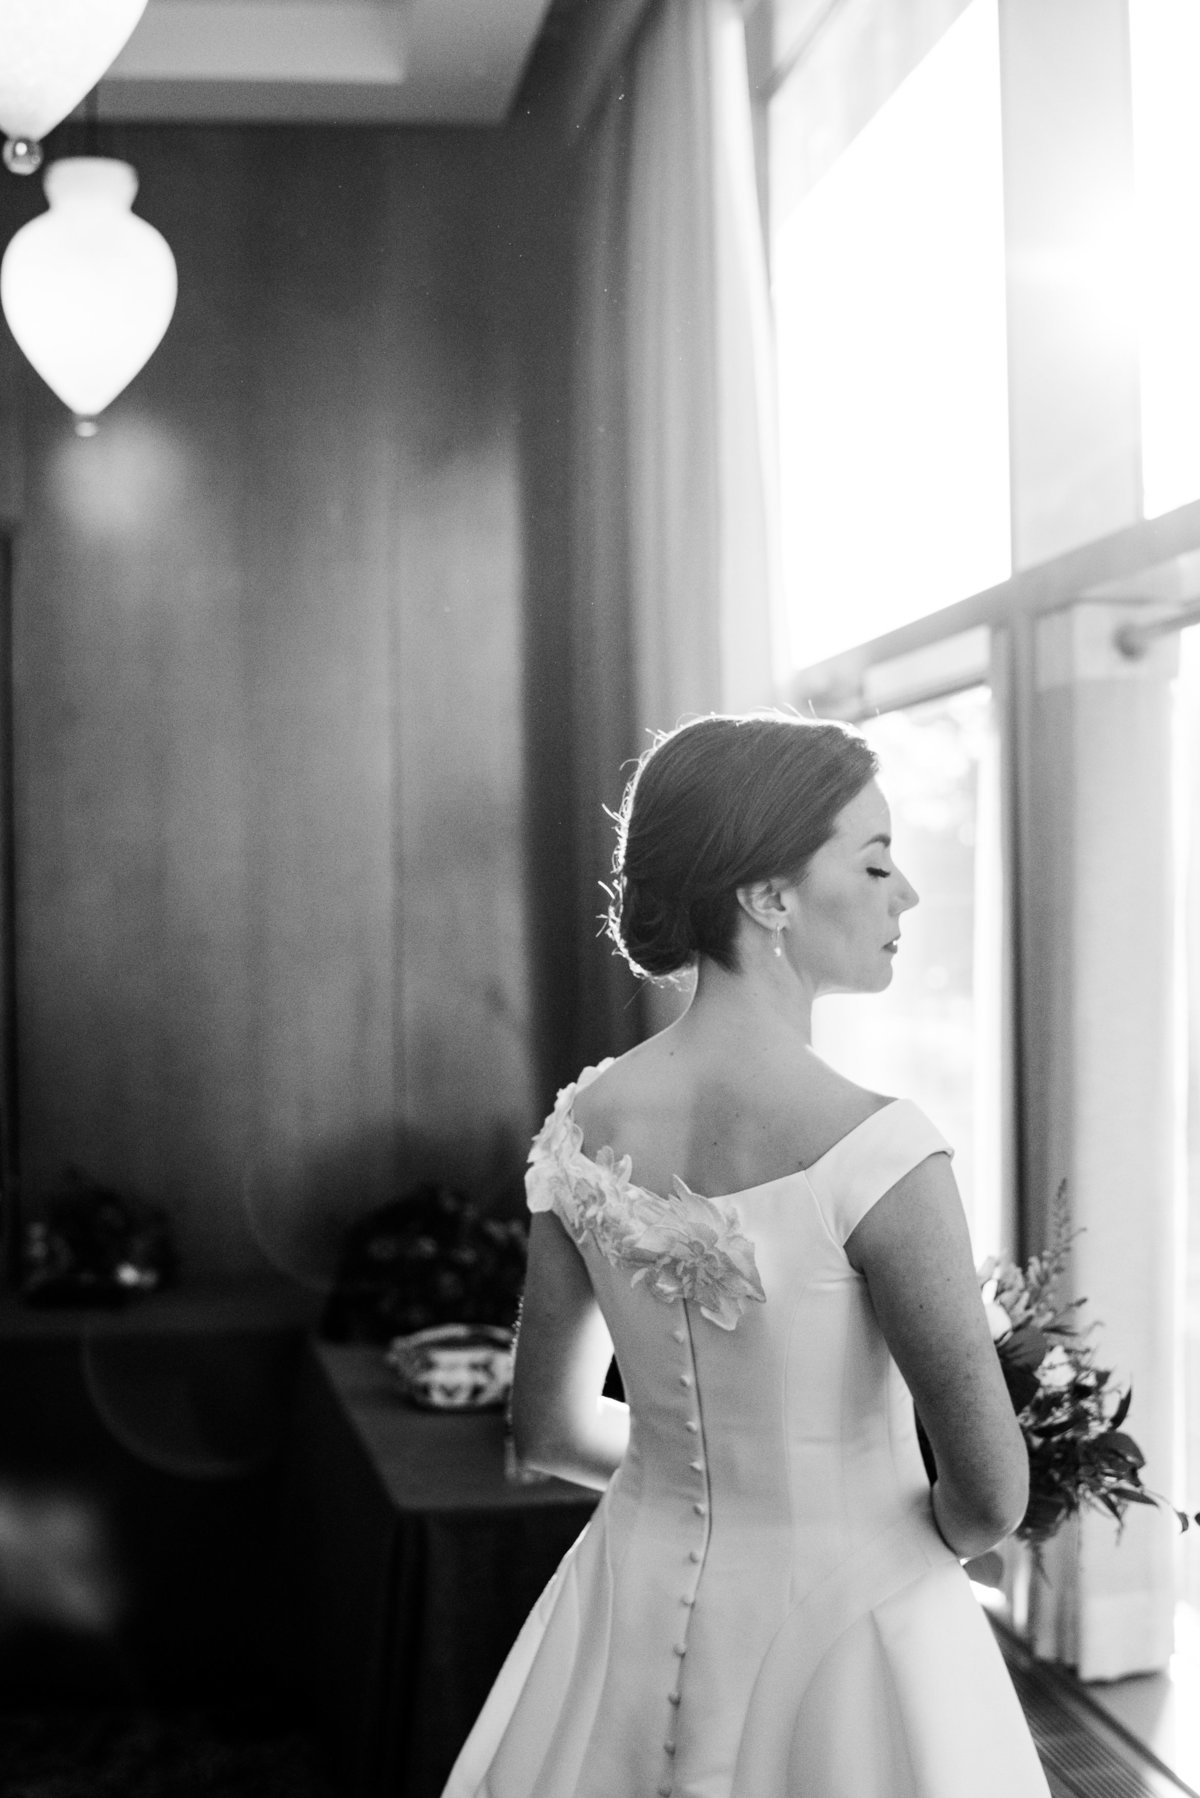 Bride in Ritz hotel in black and white